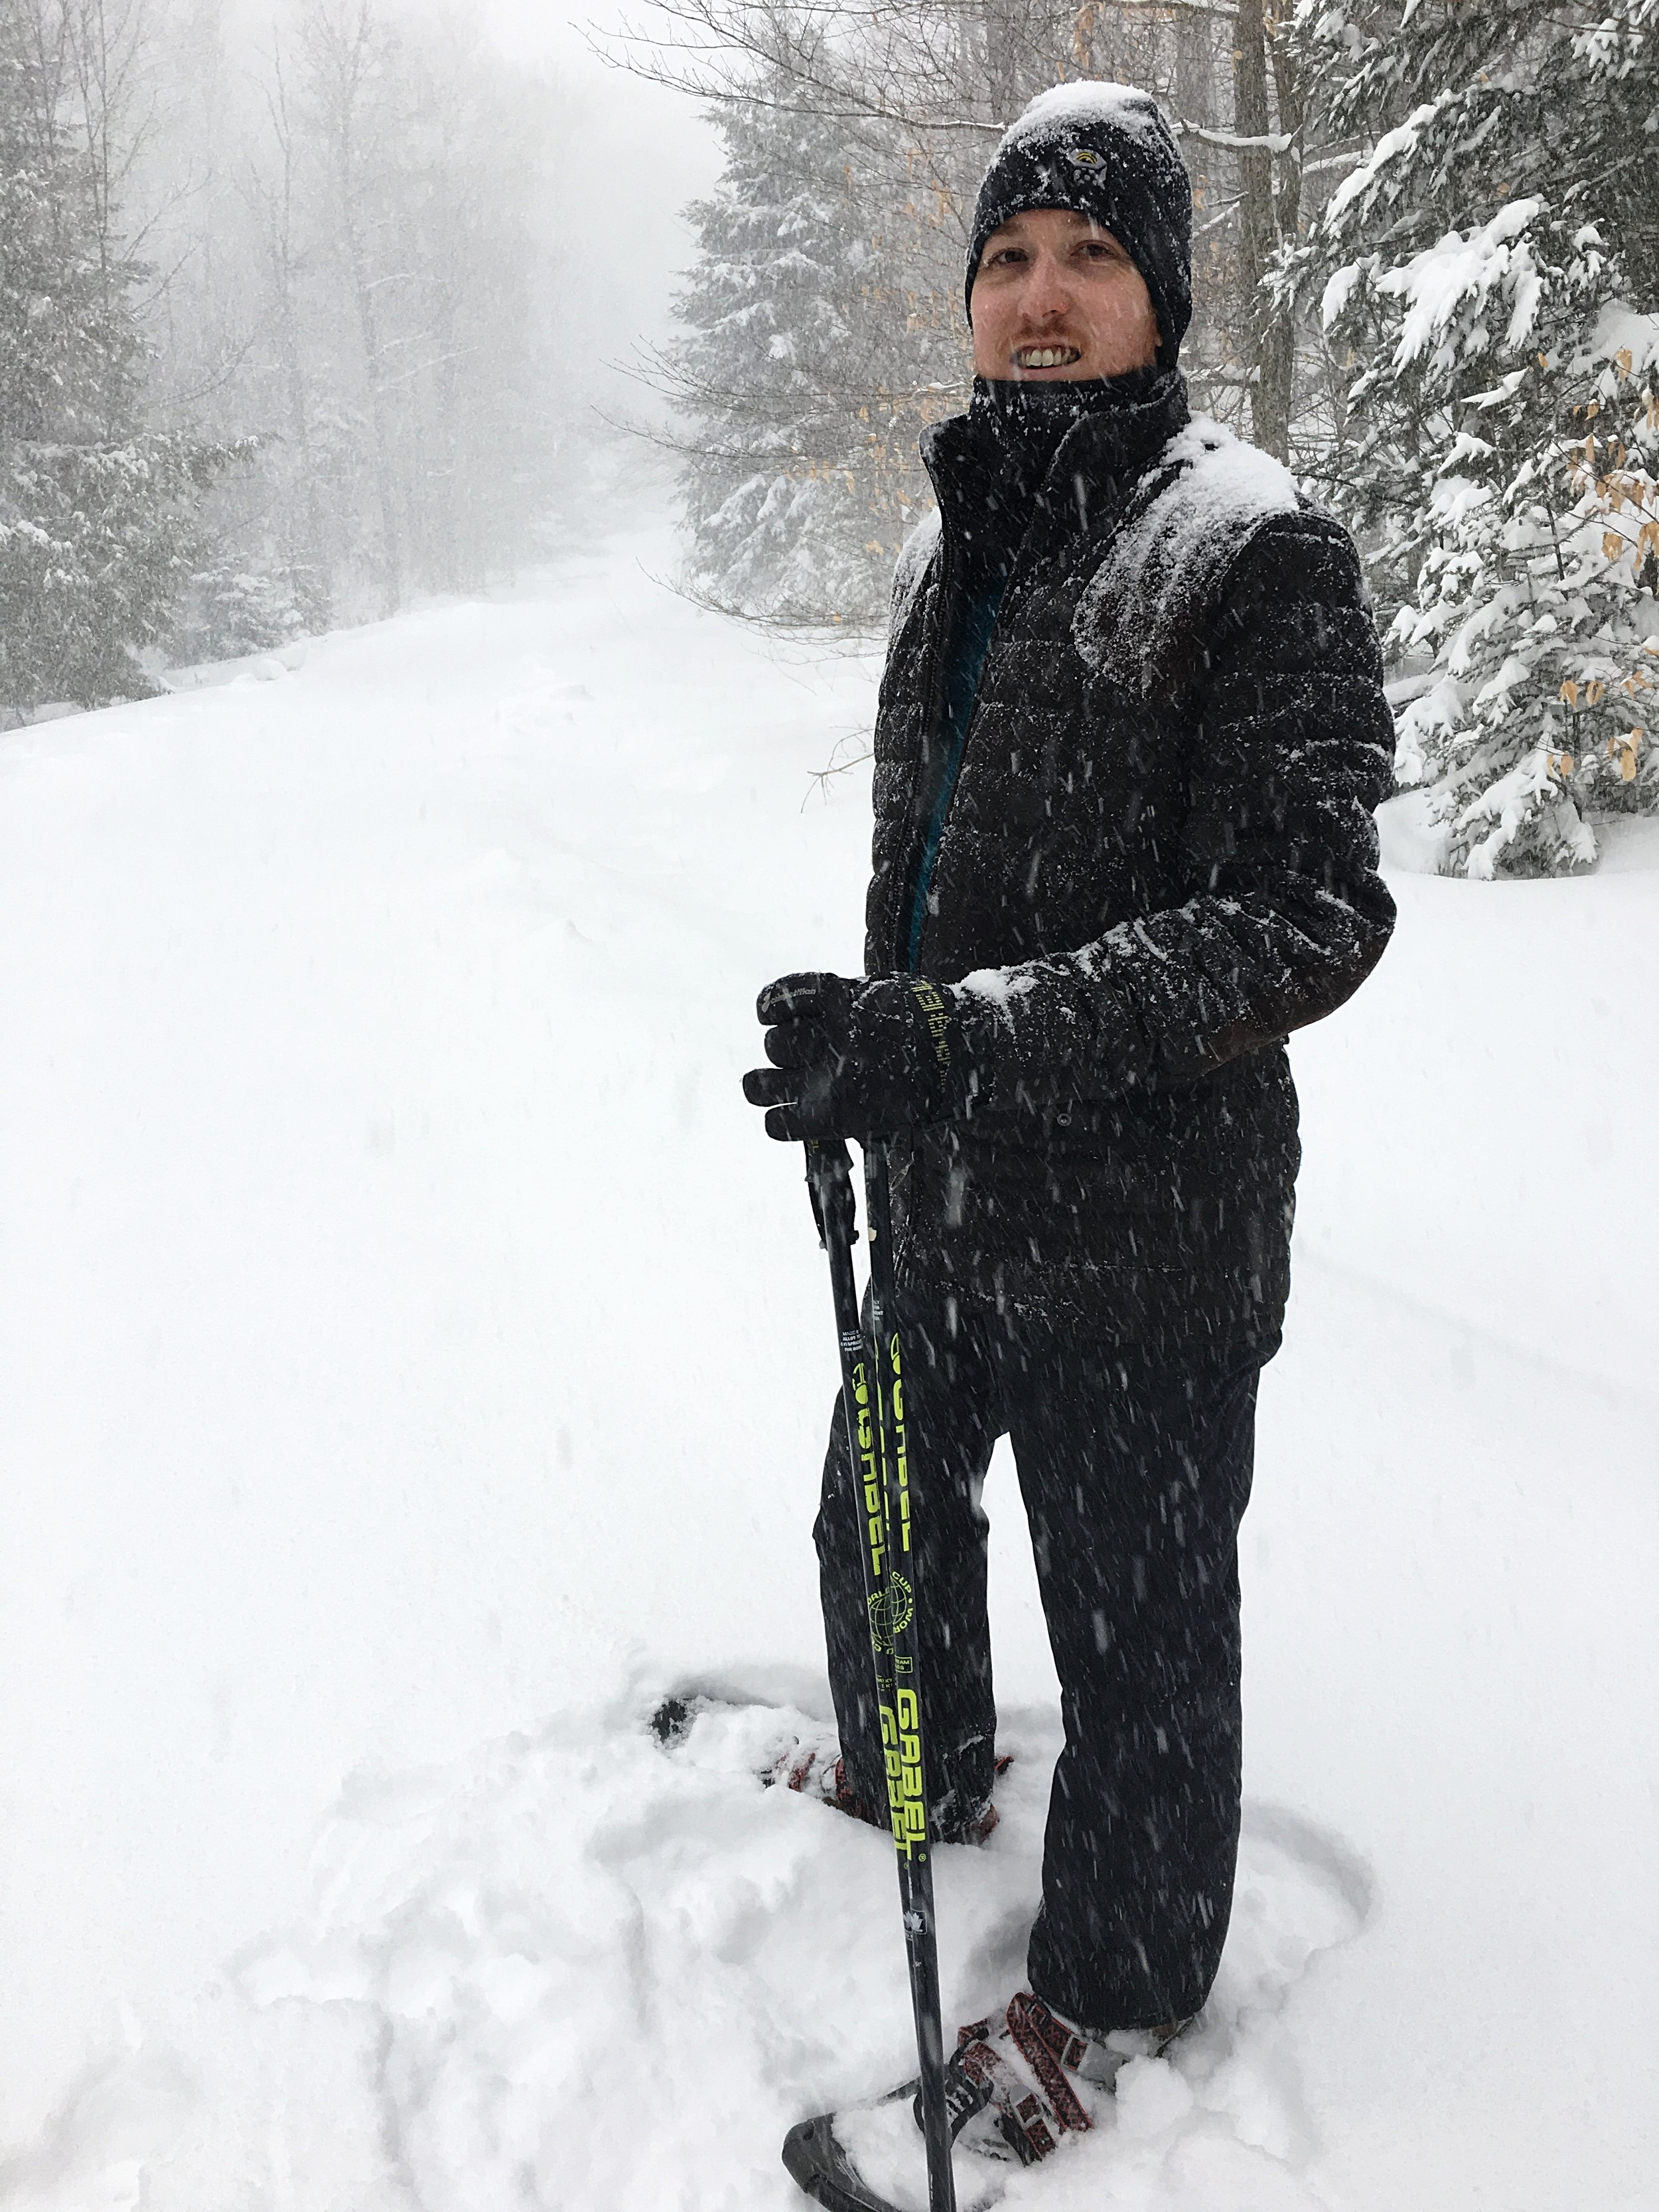 A little too south and warm for snowshoeing these days, but you get the idea.